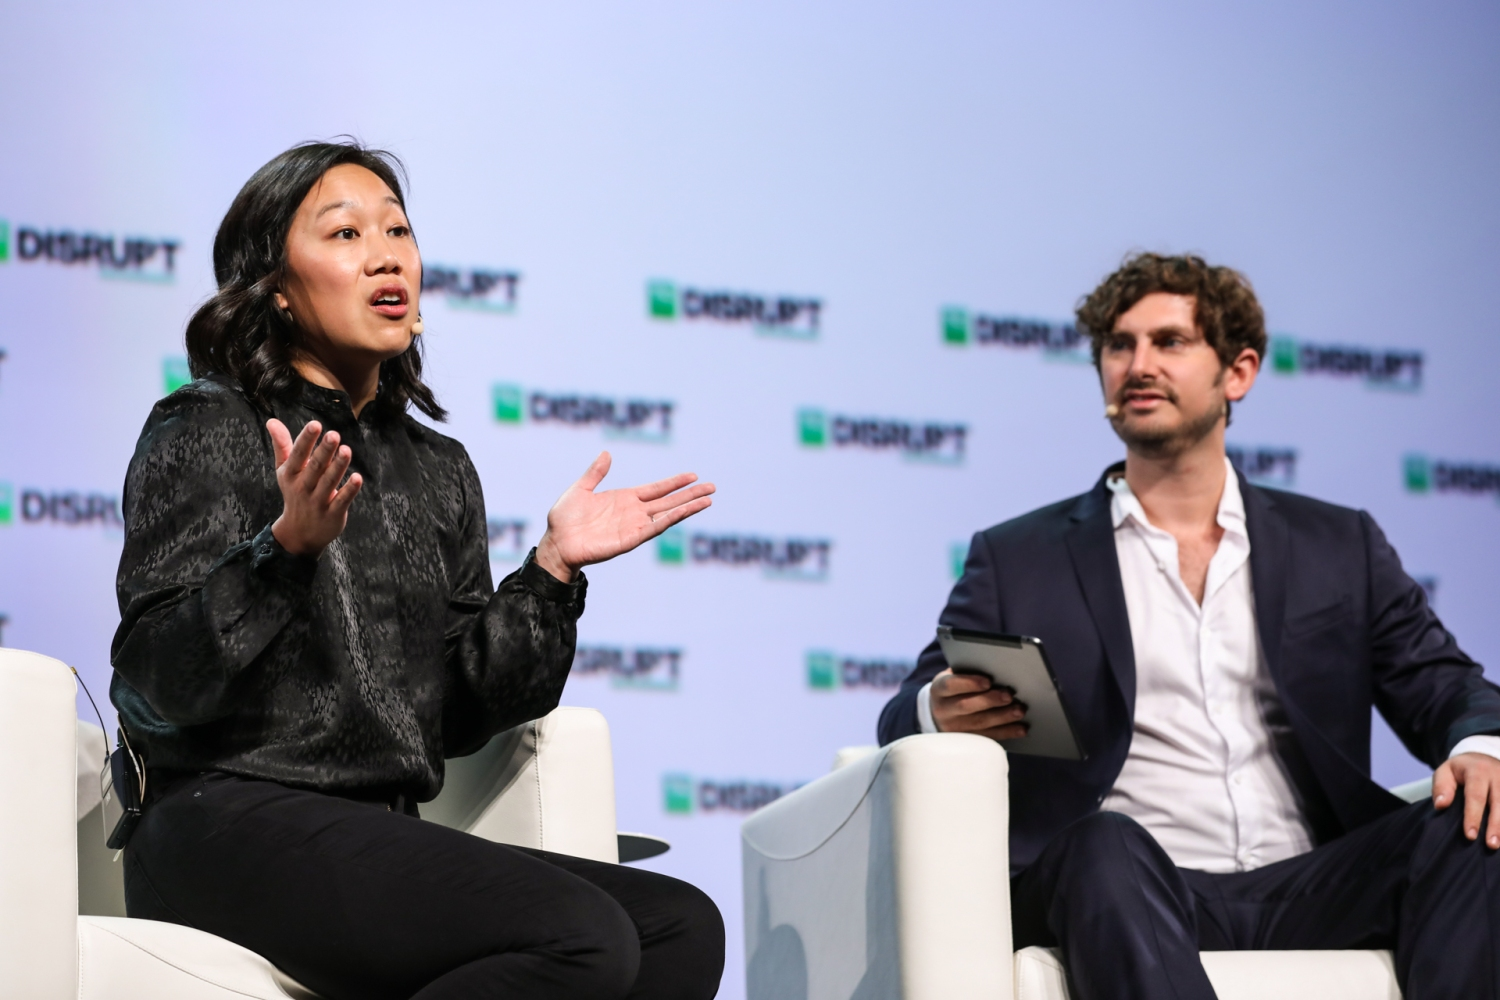 Interview with Priscilla Chan: Her super-donor origin story